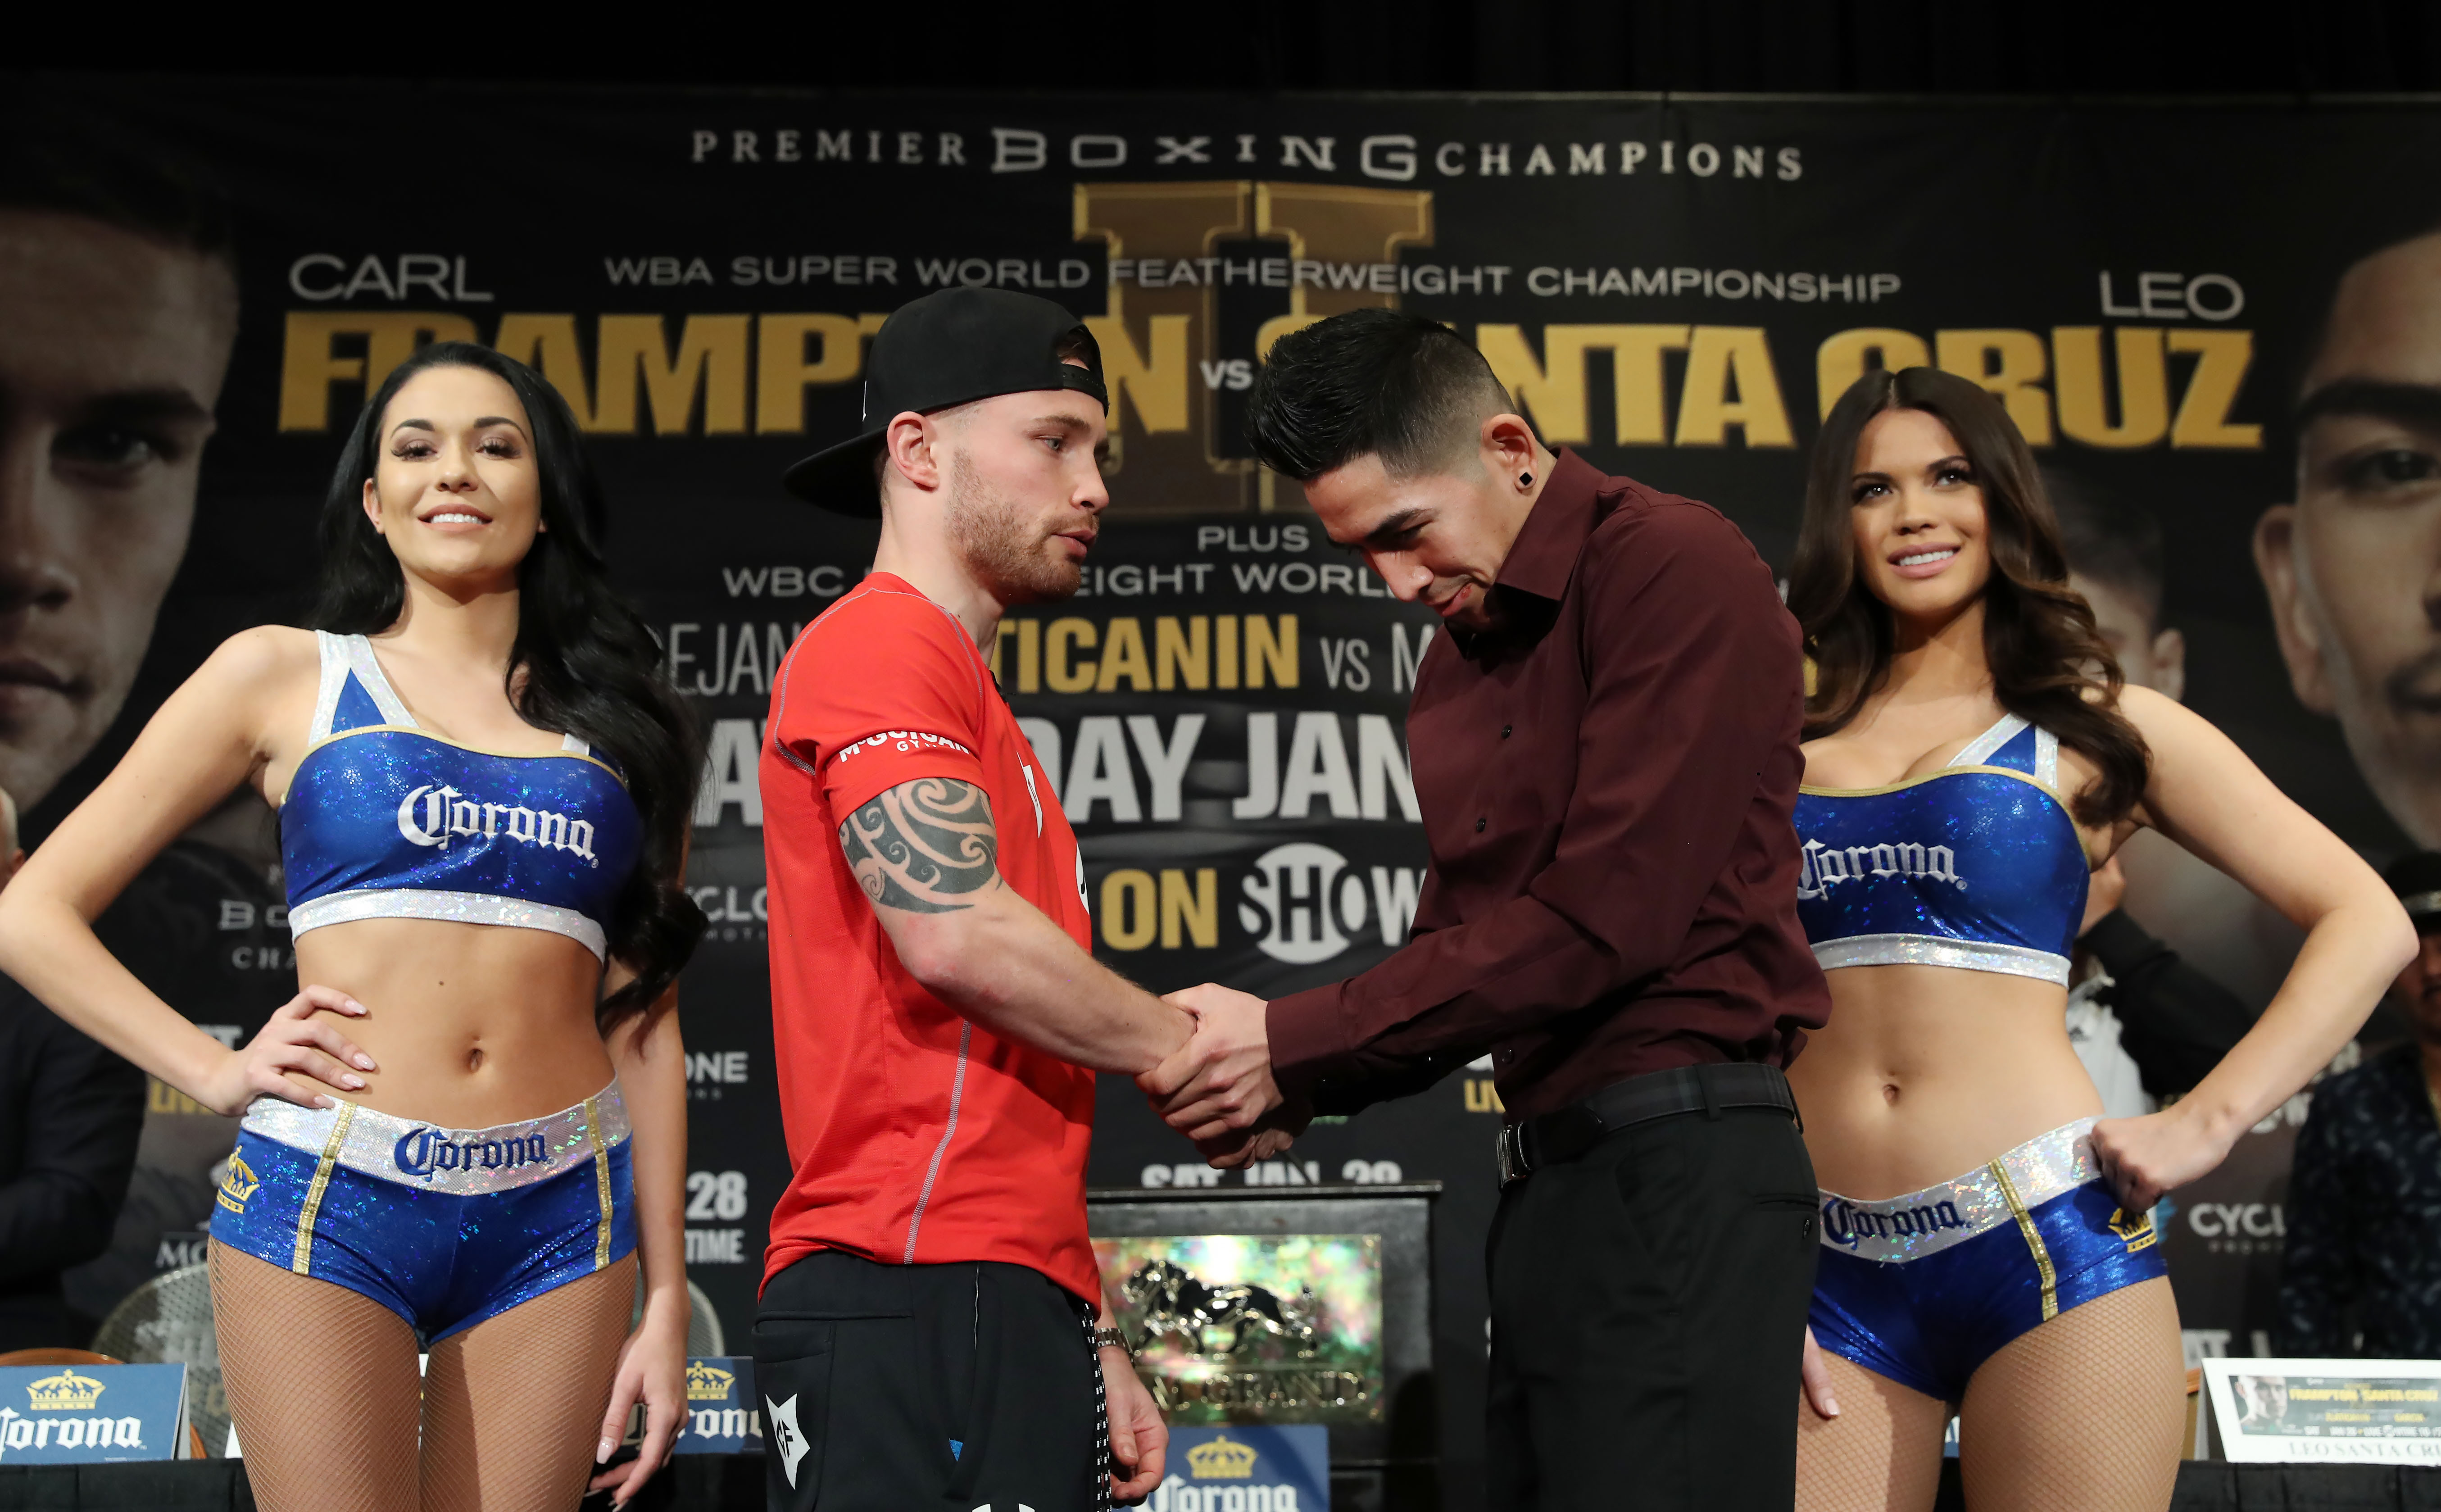 Carl Frampton and Leo Santa Cruz during Thursday\'s press conference at the MGM Grand Hotel and Casino, Las Vegas. Photo William Cherry/Presseye